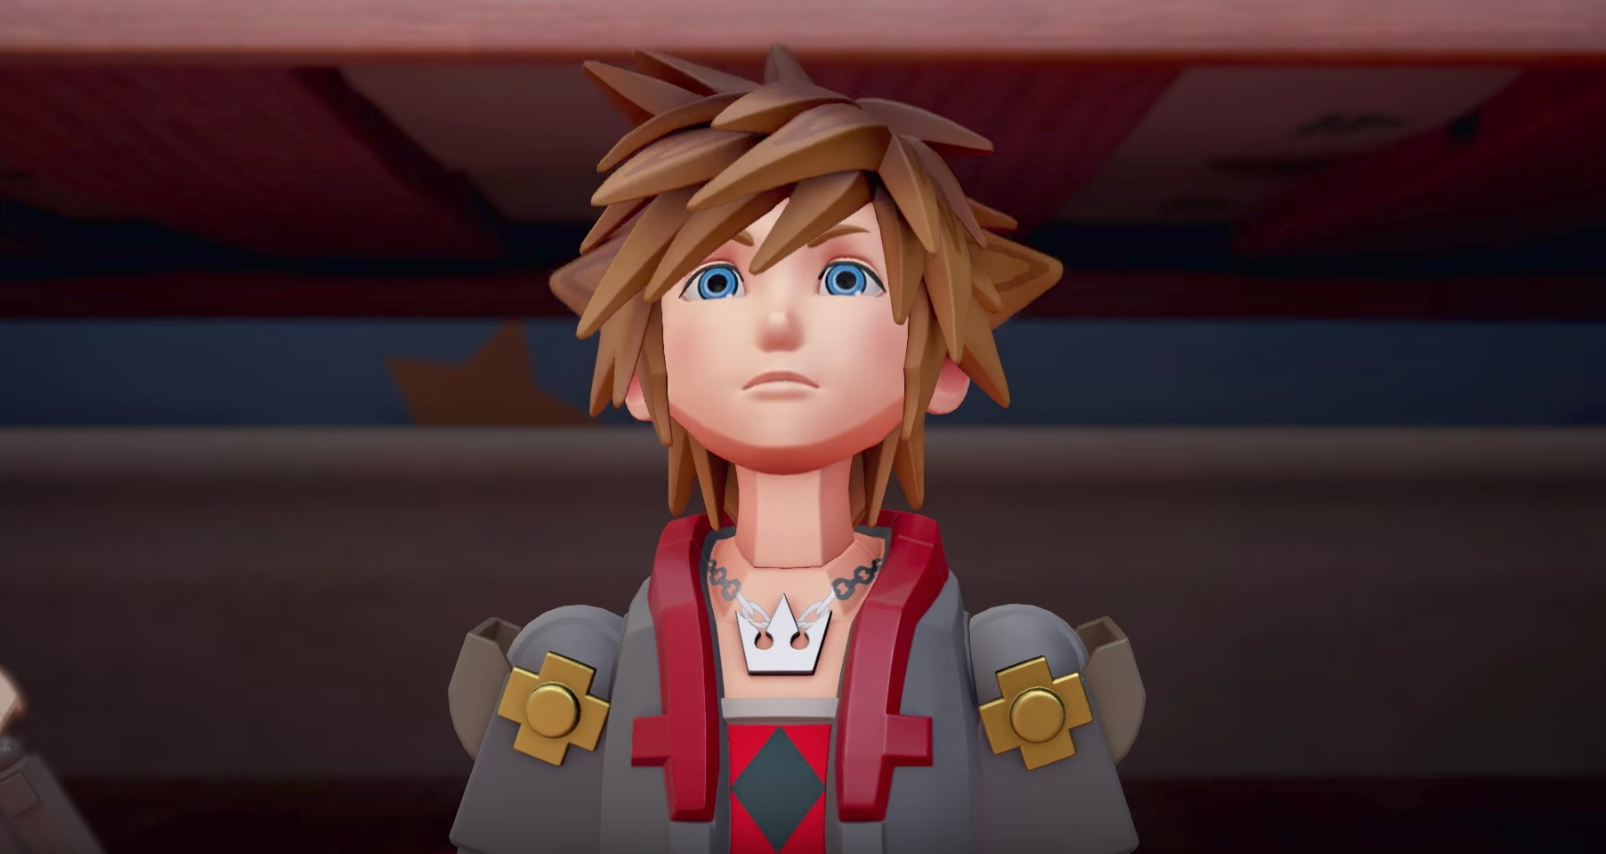 Geek It! Gaming: First Sneak Peek of Kingdom Hearts III: Toy Story, Tangled and Big Hero 6